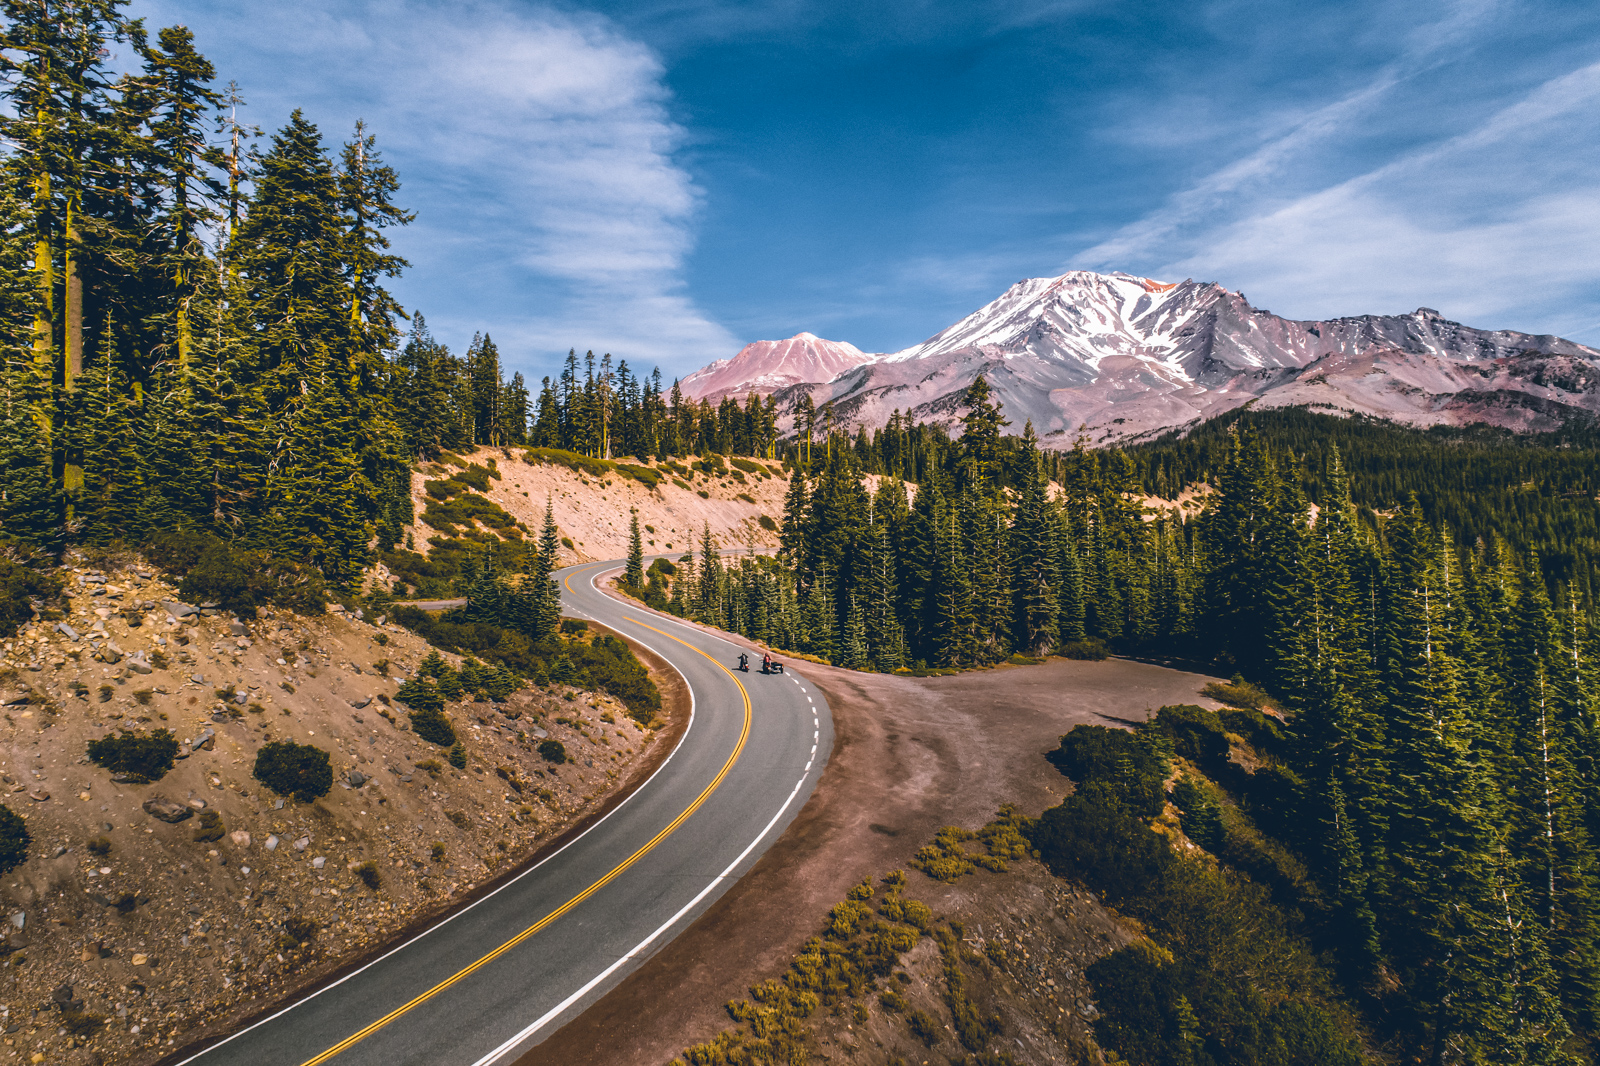 Discover Siskiyou Podcast featuring: Driving up Everett Memorial Highway - Mt. Shasta, CA Landscape